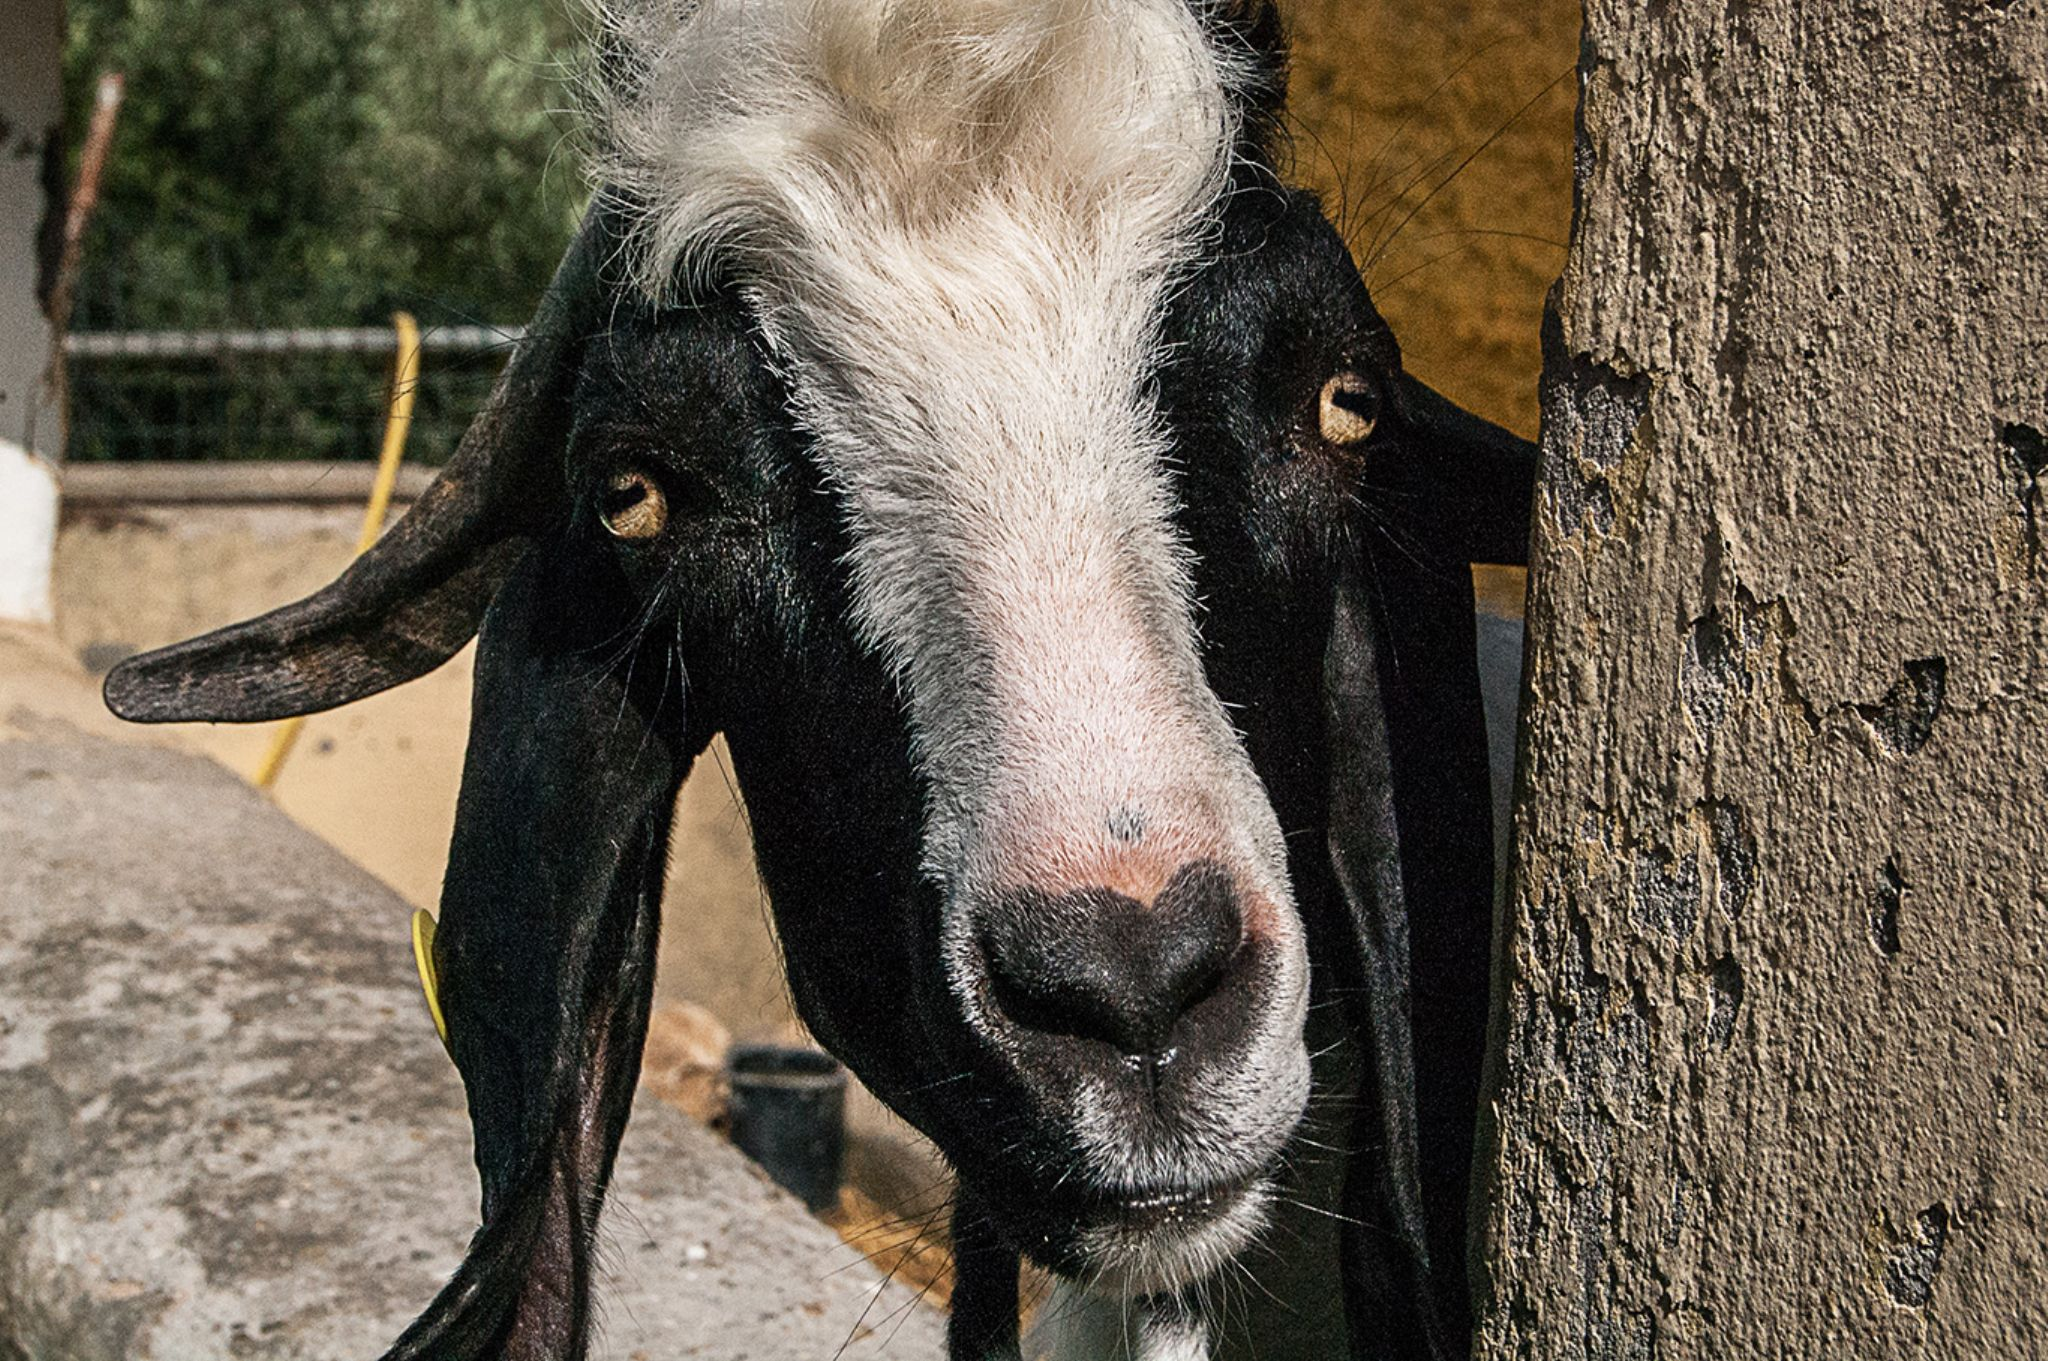 Goat by Andrea Bianchini